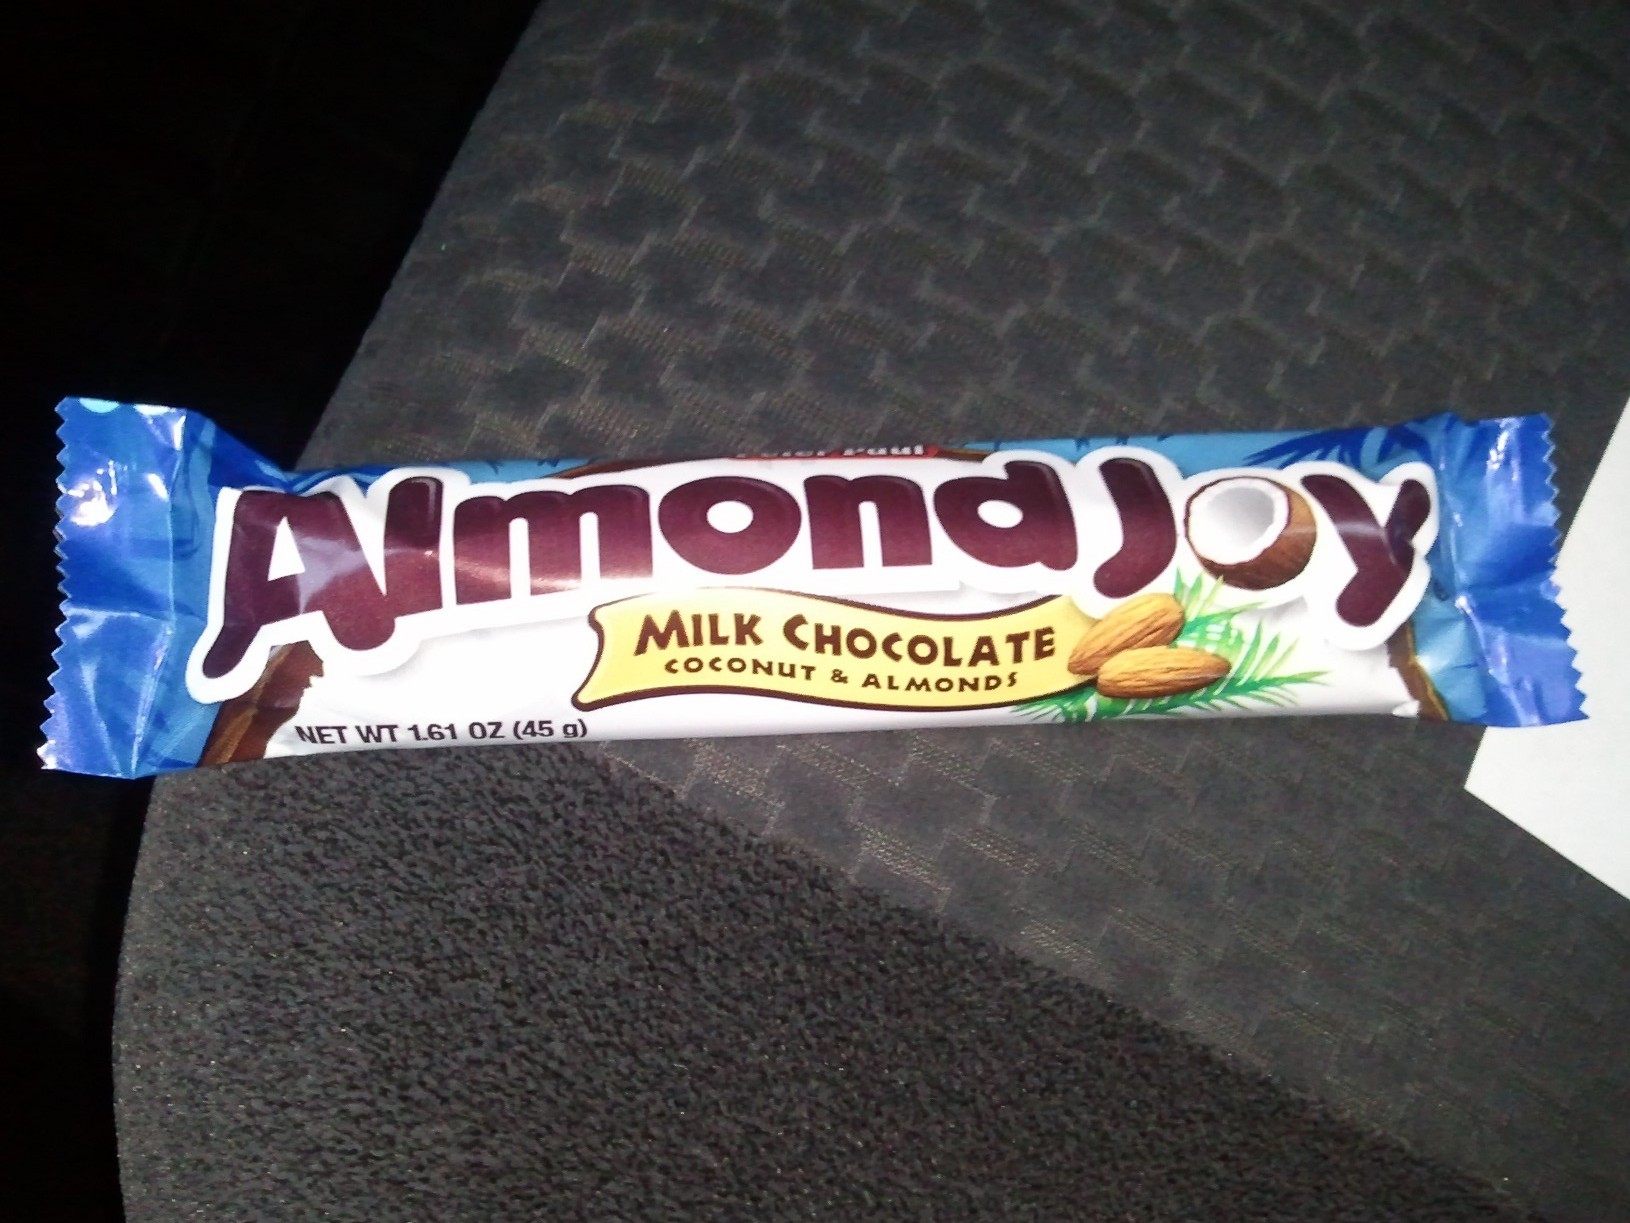 Coconut, almonds, and chocolate. Oh my!